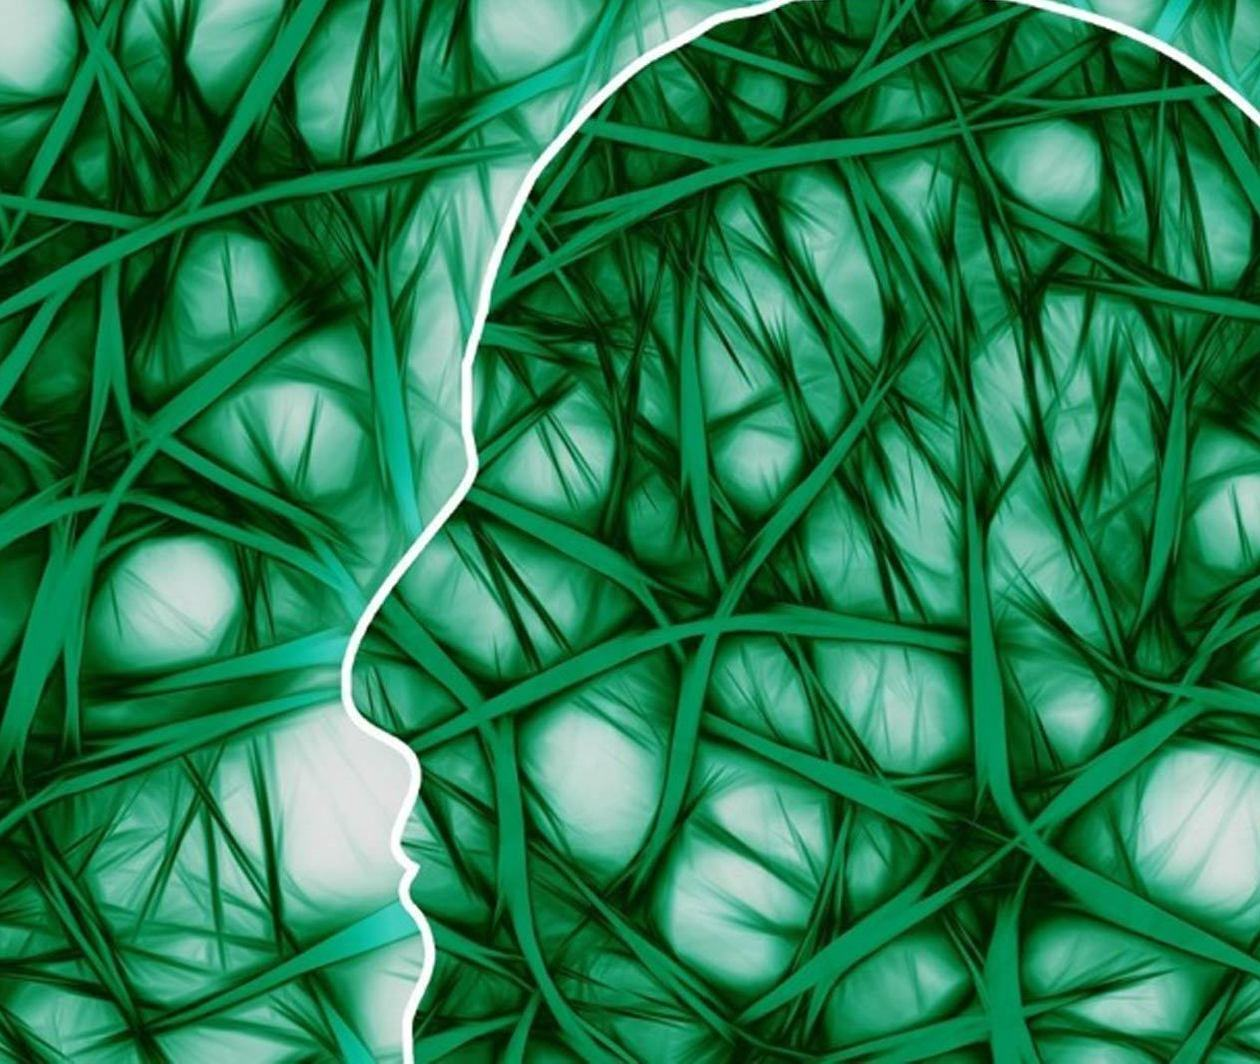 Psychology and Mental Health: Beyond Nature and Nurture